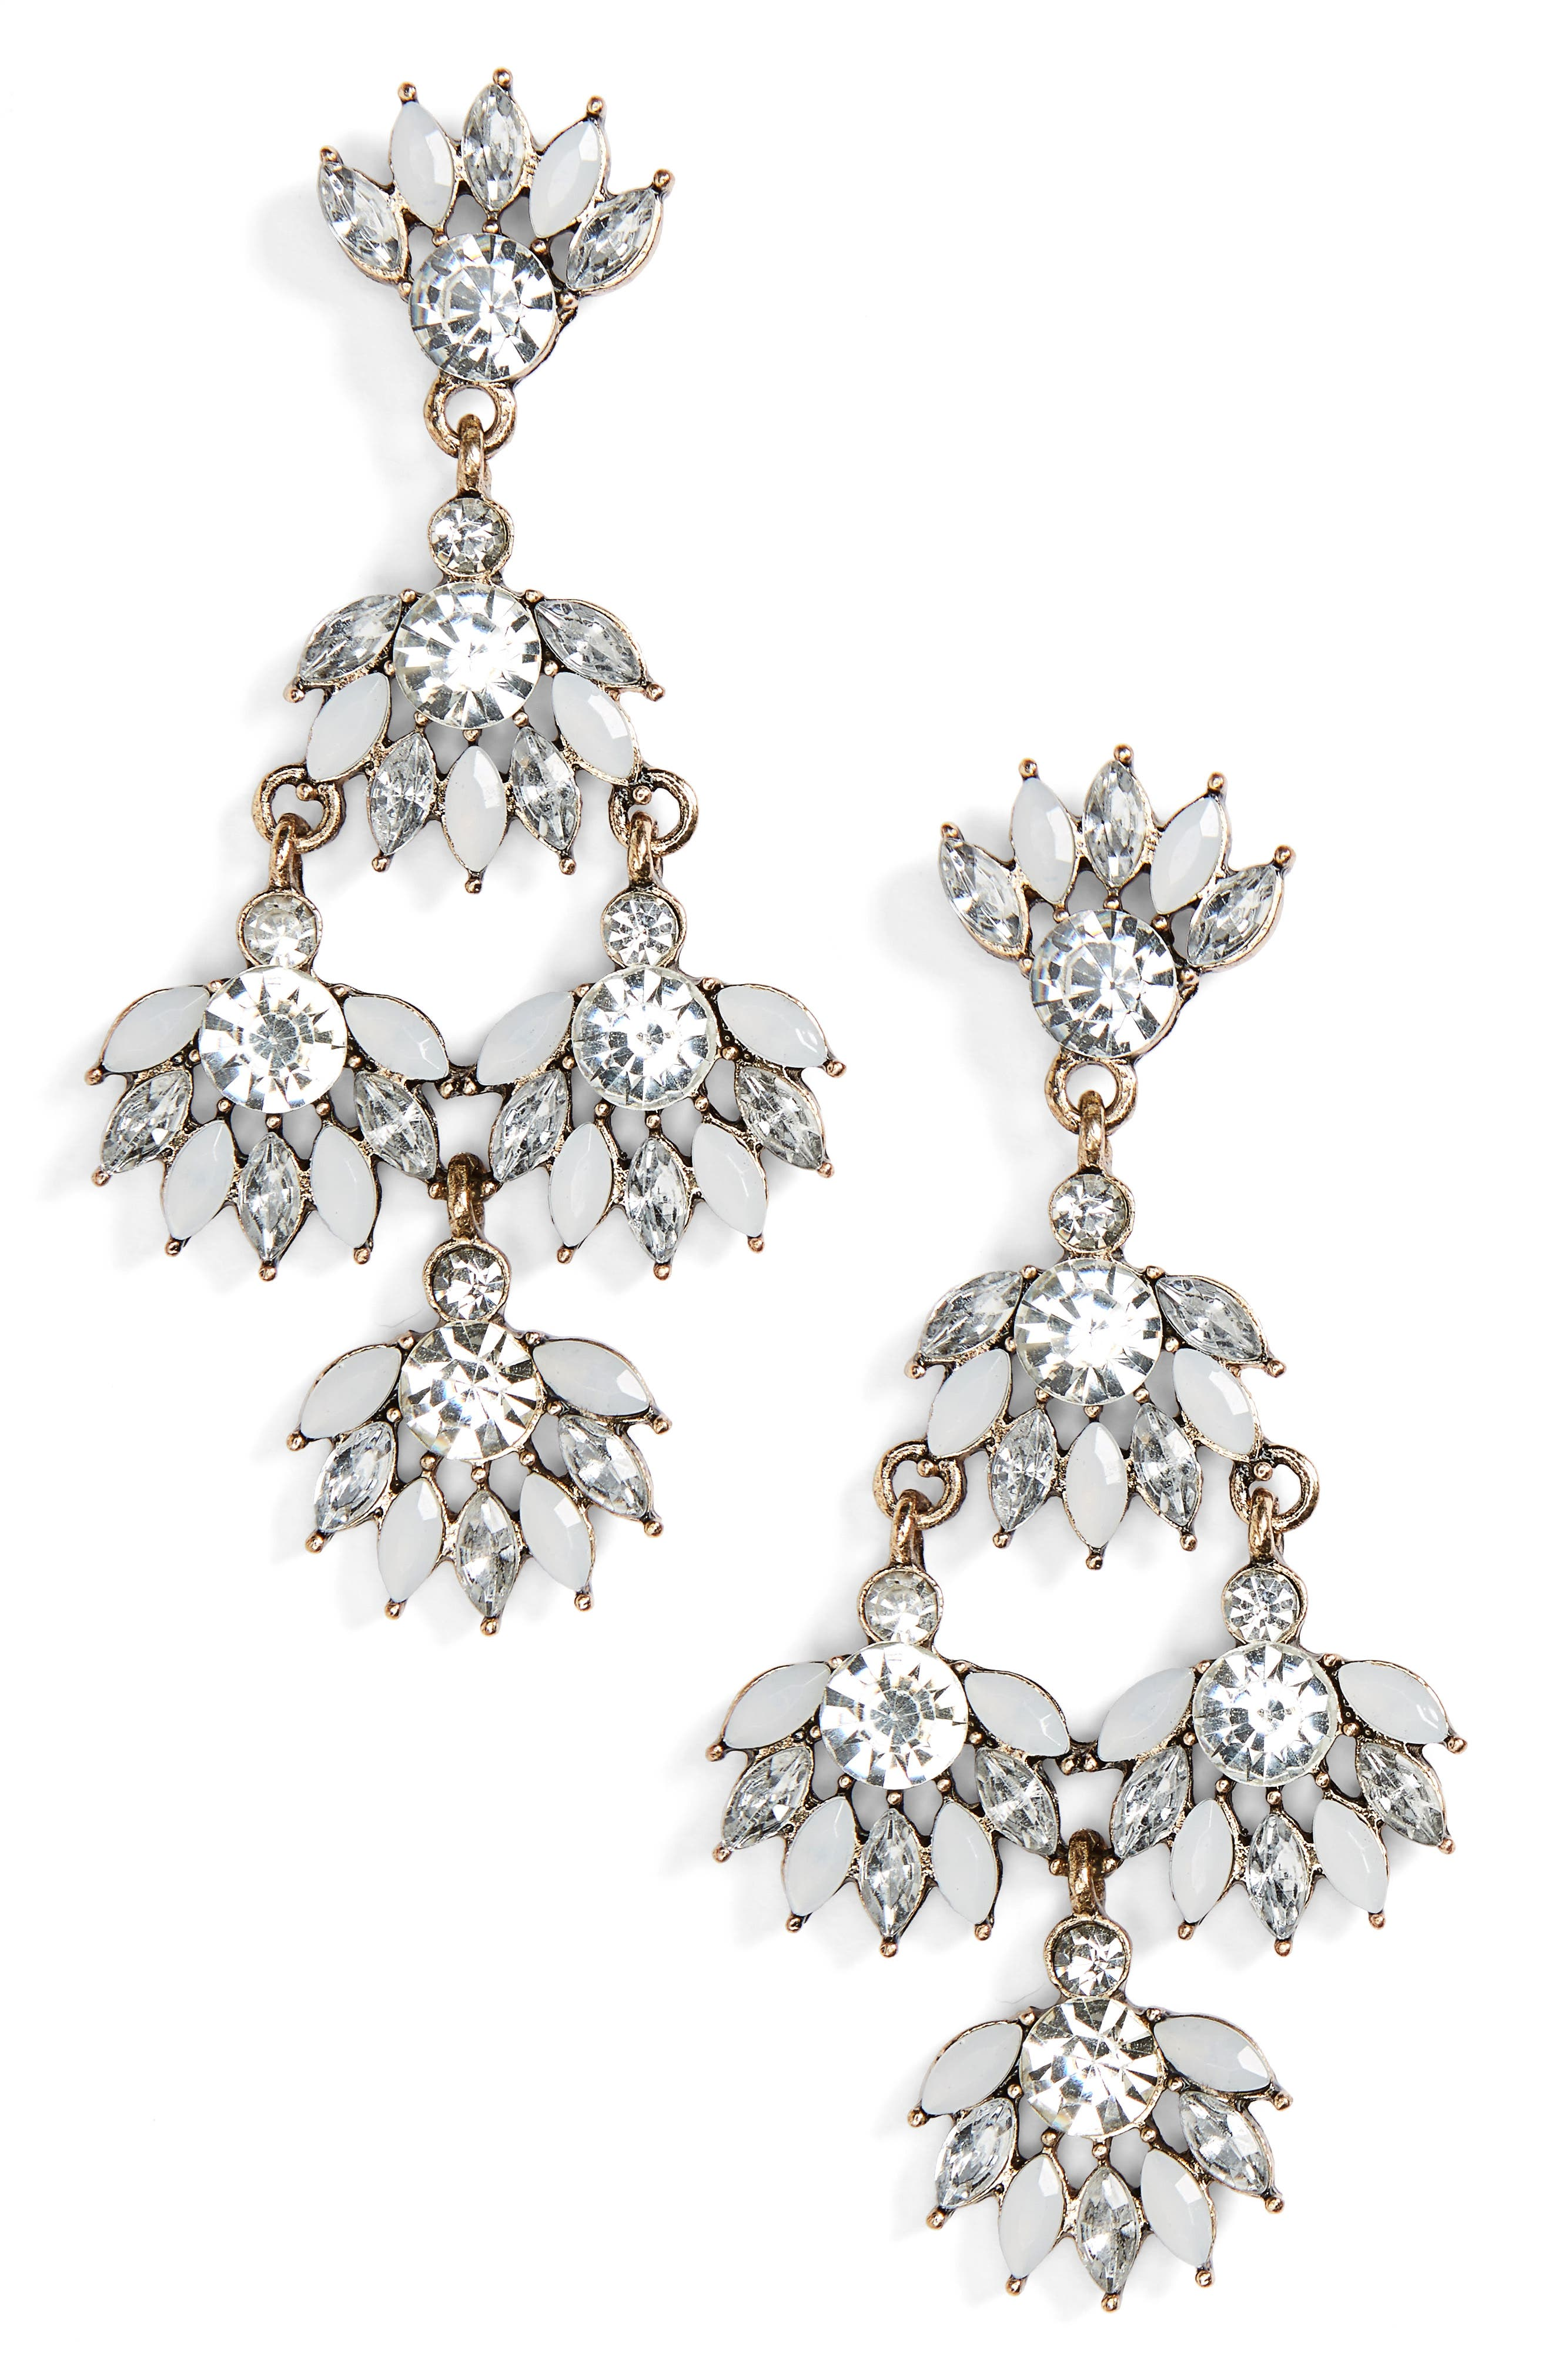 SOLE SOCIETY, Chandelier Earrings, Main thumbnail 1, color, 100